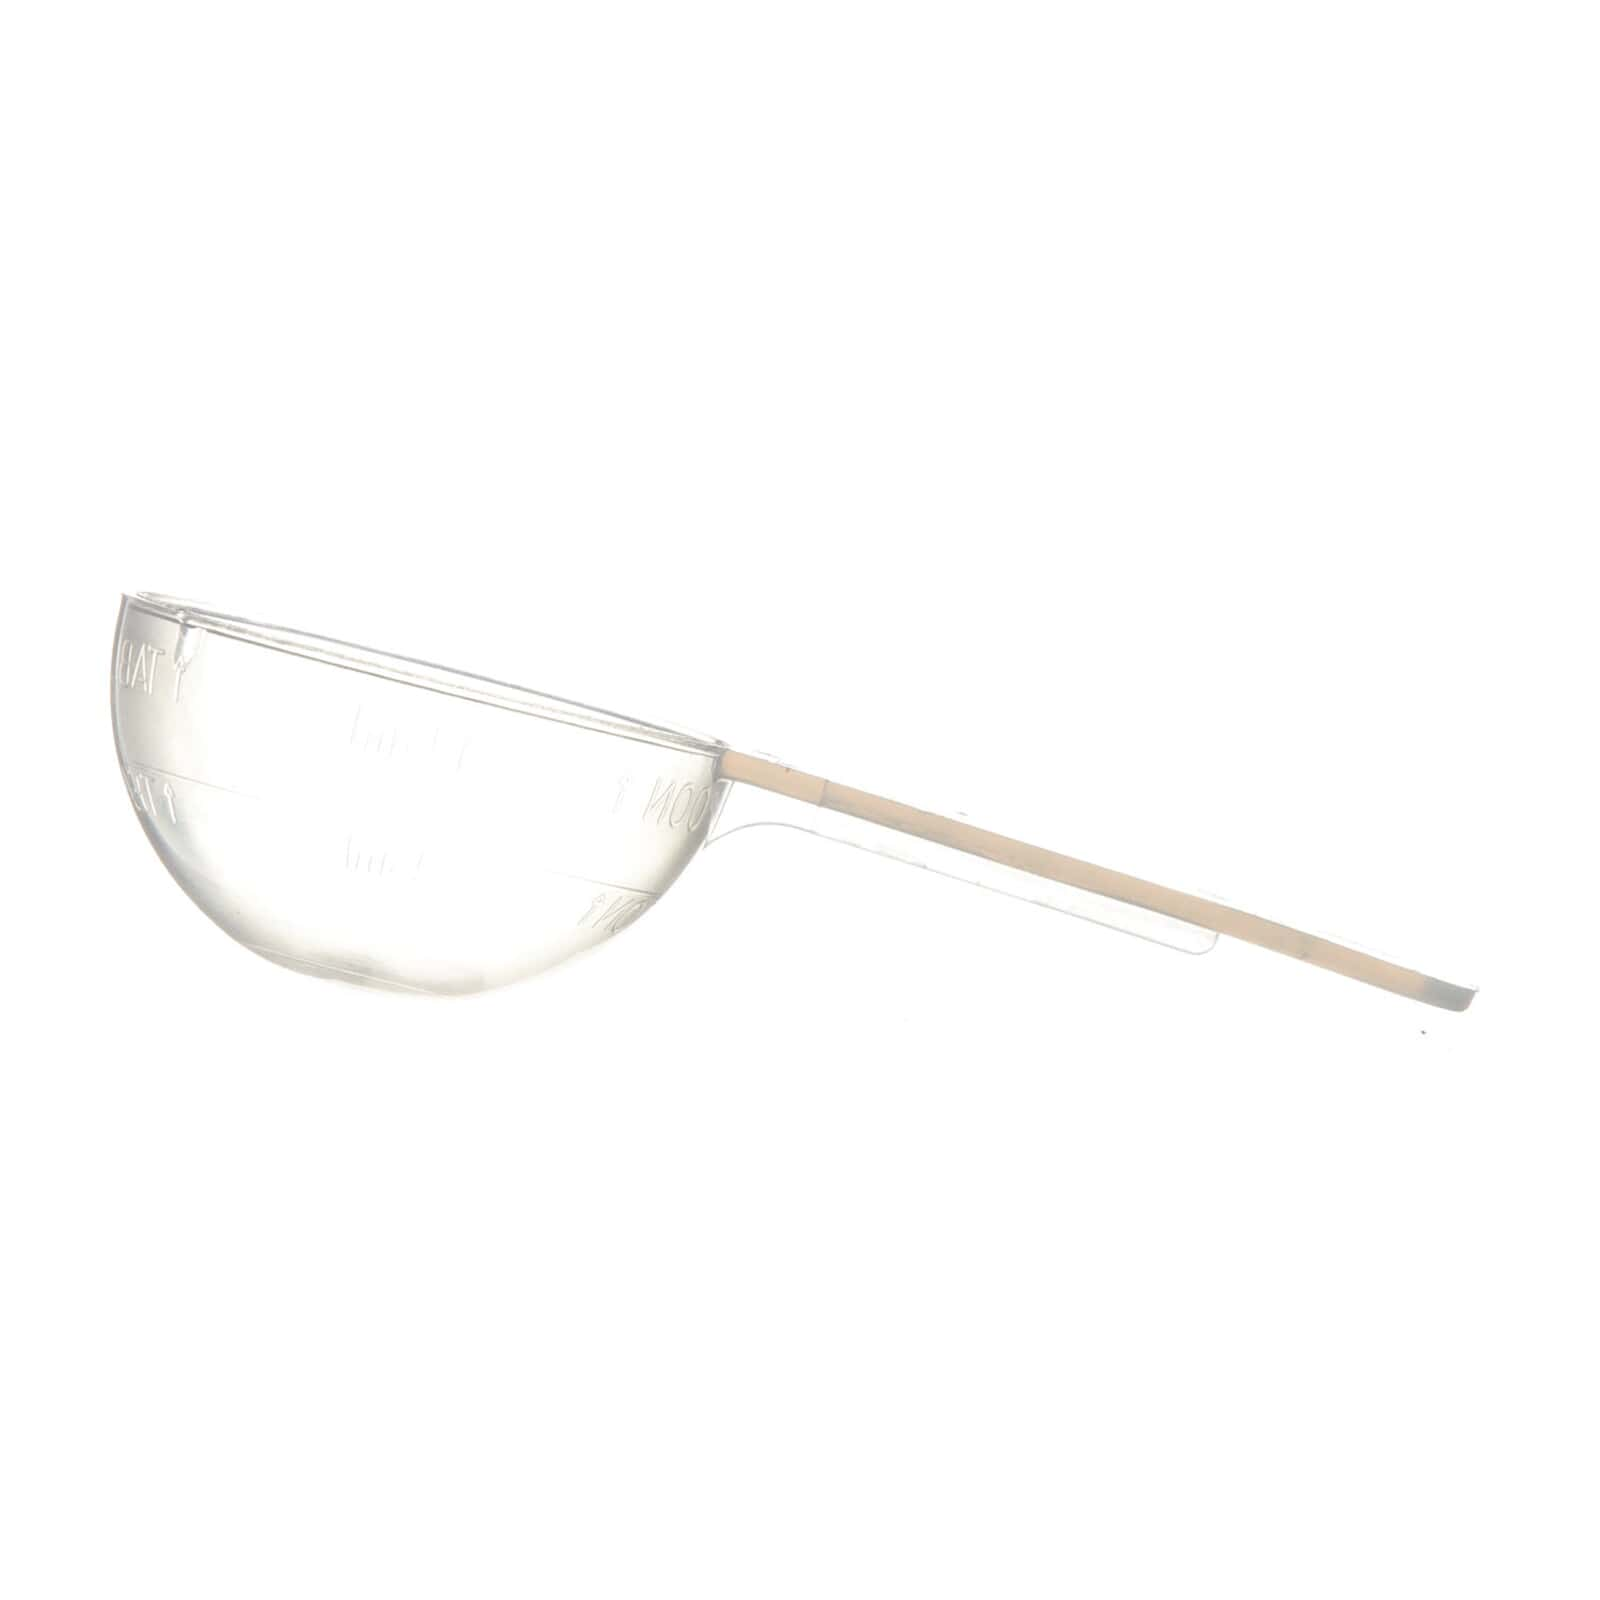 14 79 cc Natural P/P Plastic Long Handled Scoop with Graduation Marks